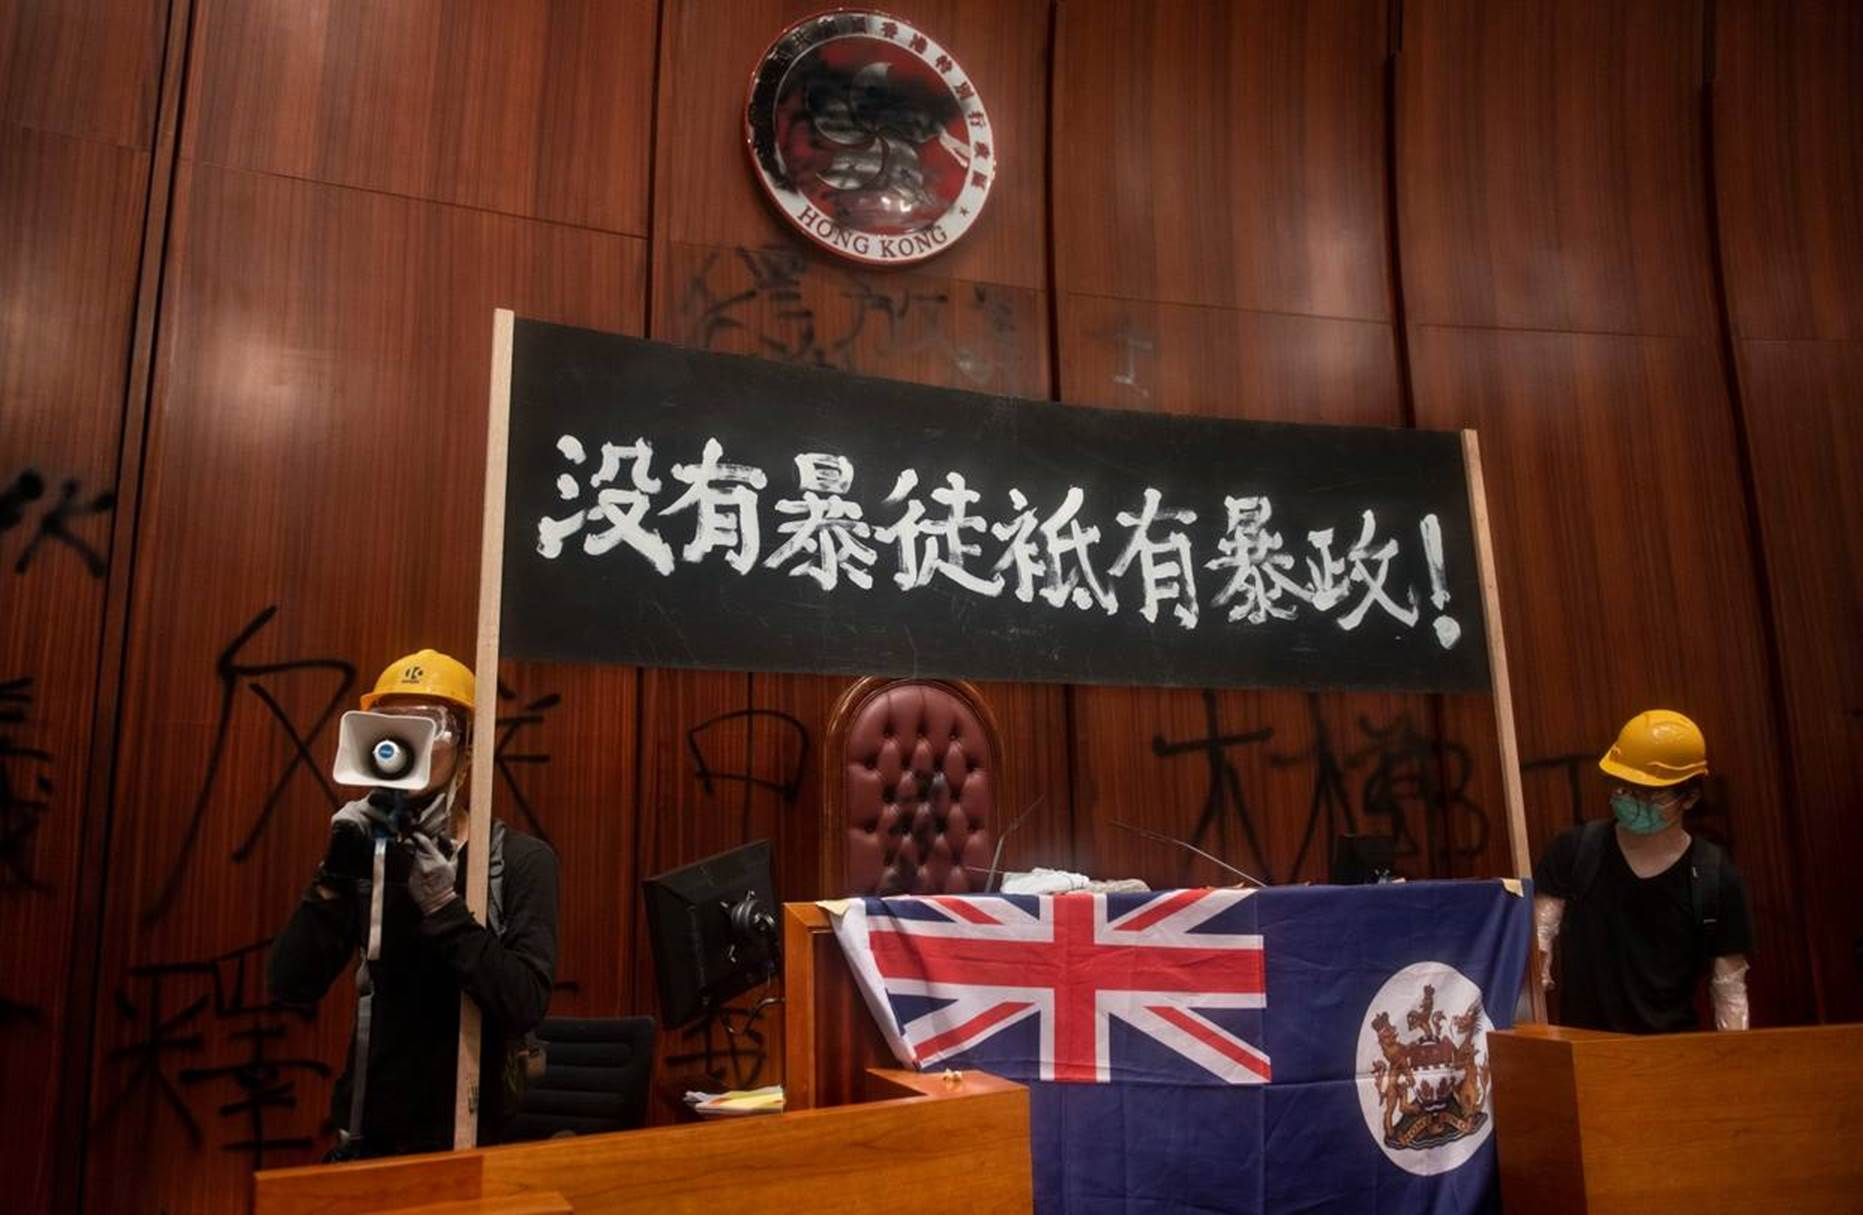 Protesters in the Legislative Council building in Hong Kong, July 1. PHOTO: SOPA IMAGES/LIGHTROCKET VIA GETTY IMAGES